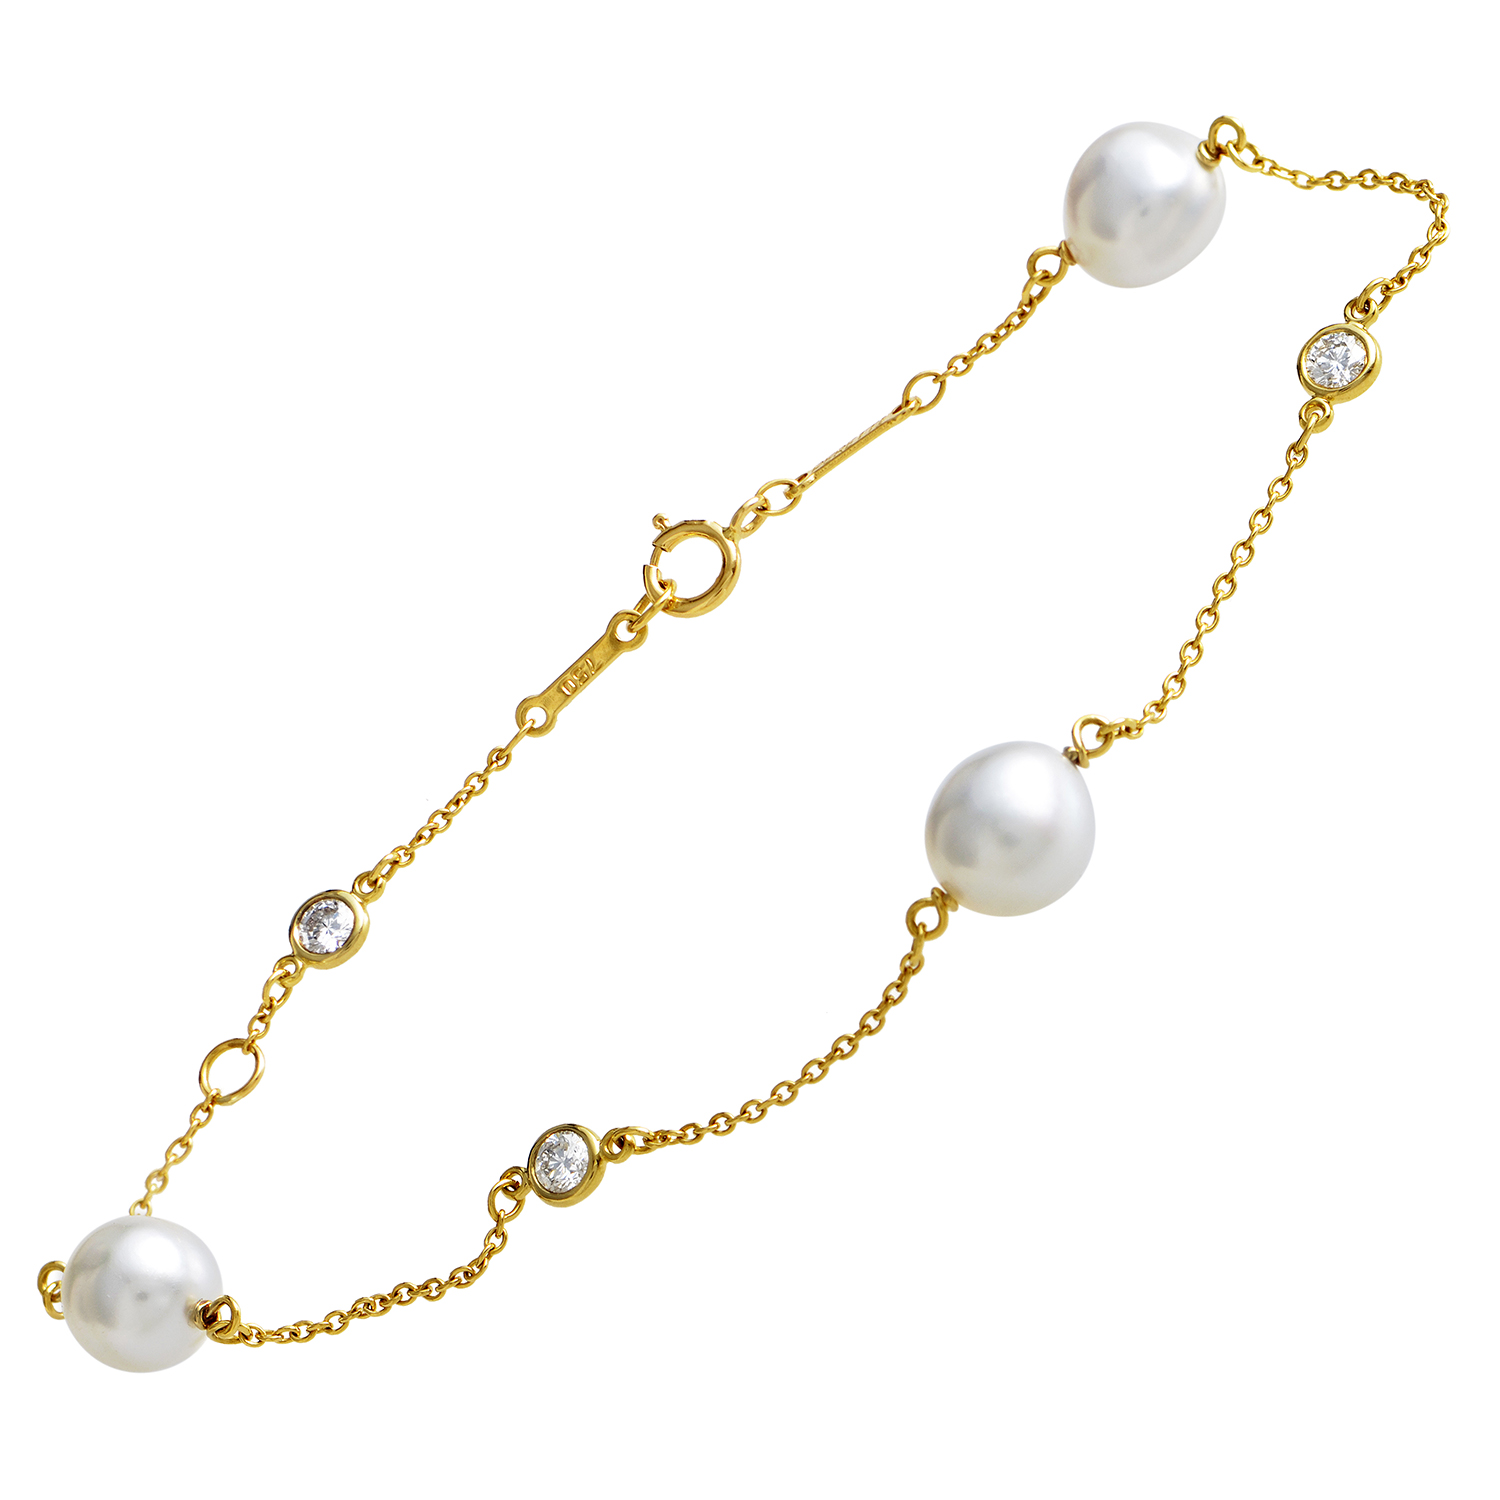 Tiffany & Co. Elsa Peretti Diamonds by the Yard 18K Gold Diamond & Pearl Bracelet